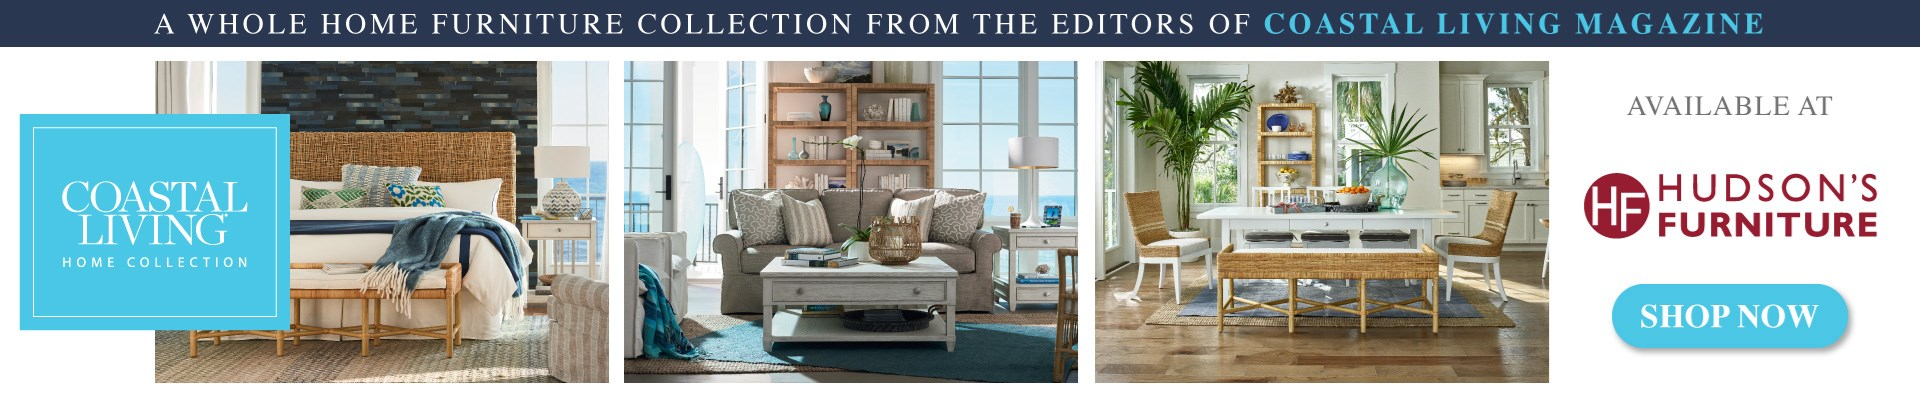 Coastal Living Home Collection Available At Hudson's Furniture